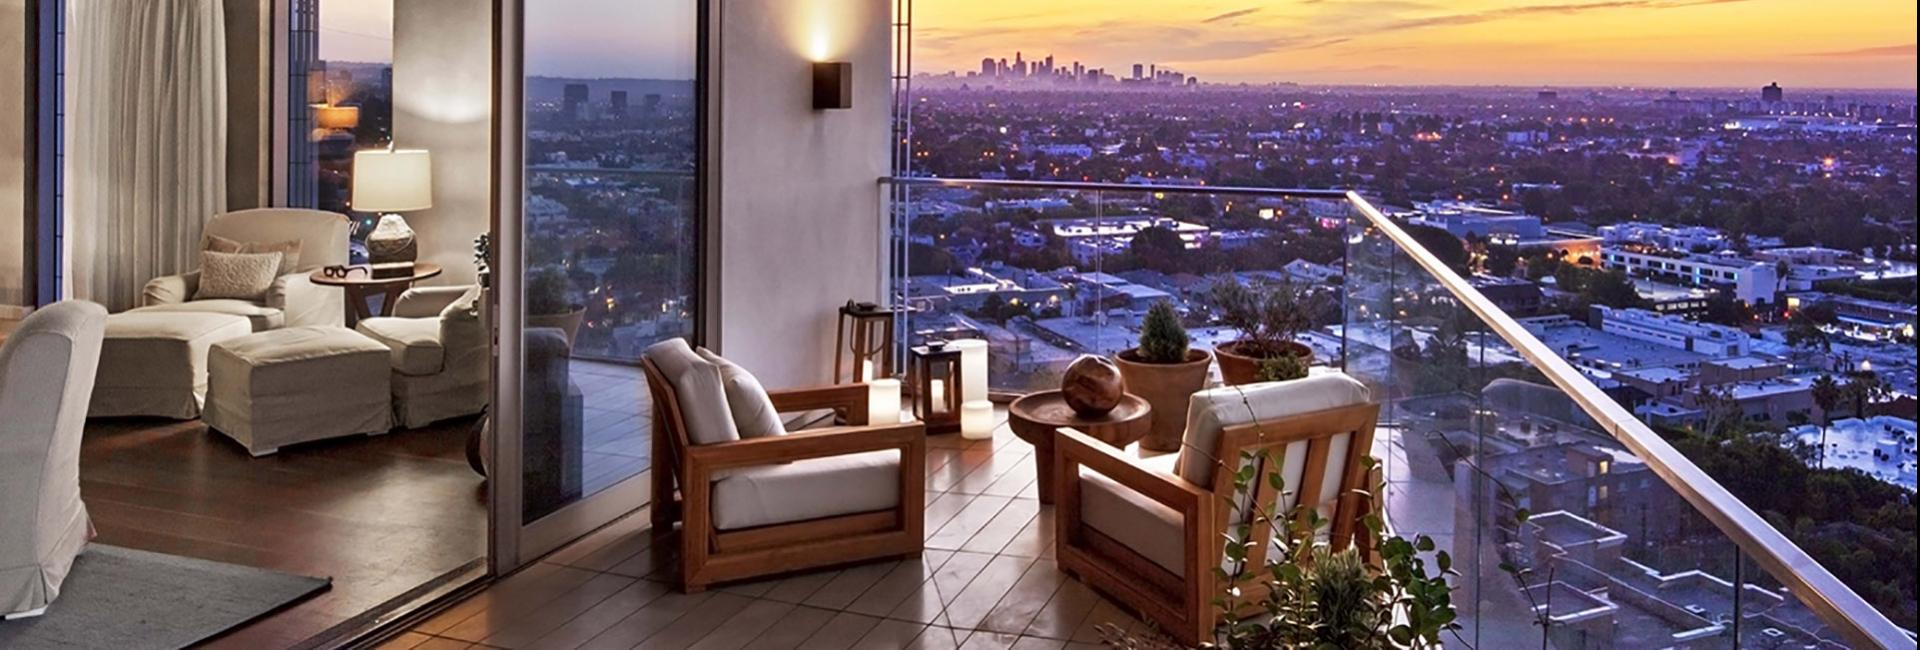 Canyon Penthouse Balcony View